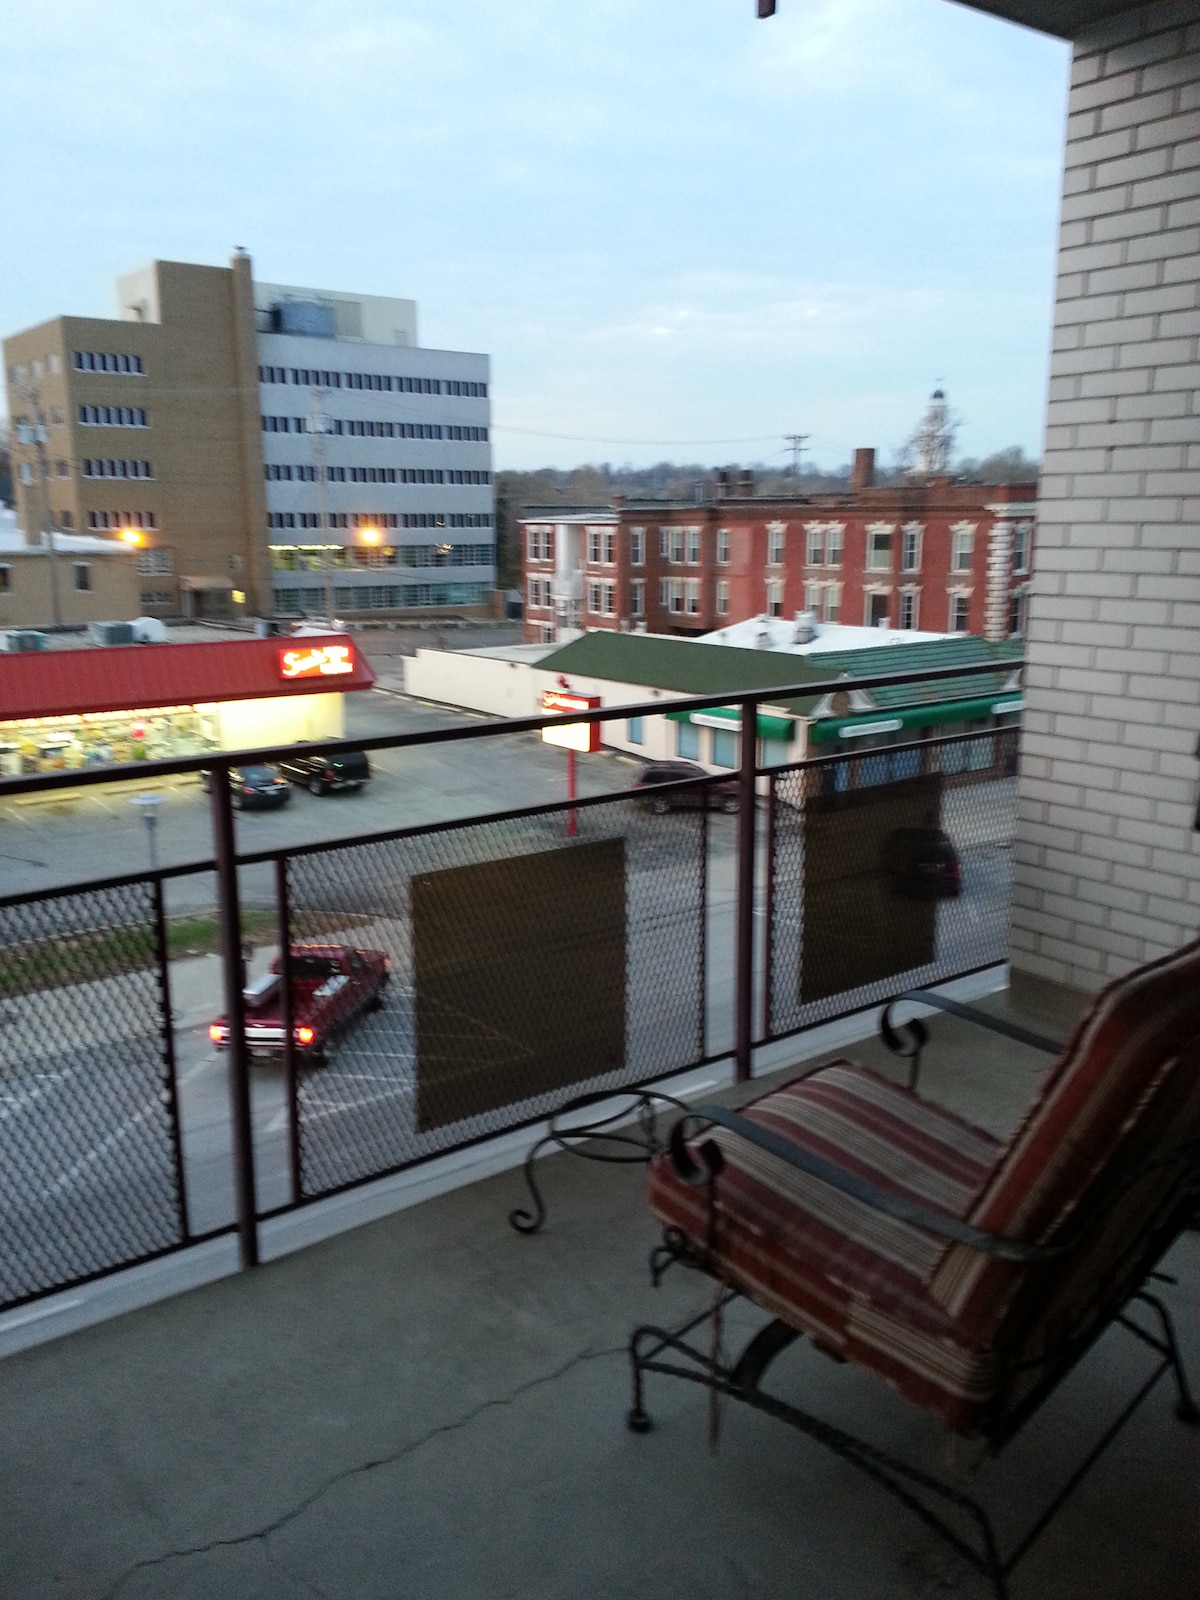 South facing 3rd floor balcony - good people watching opportunity...